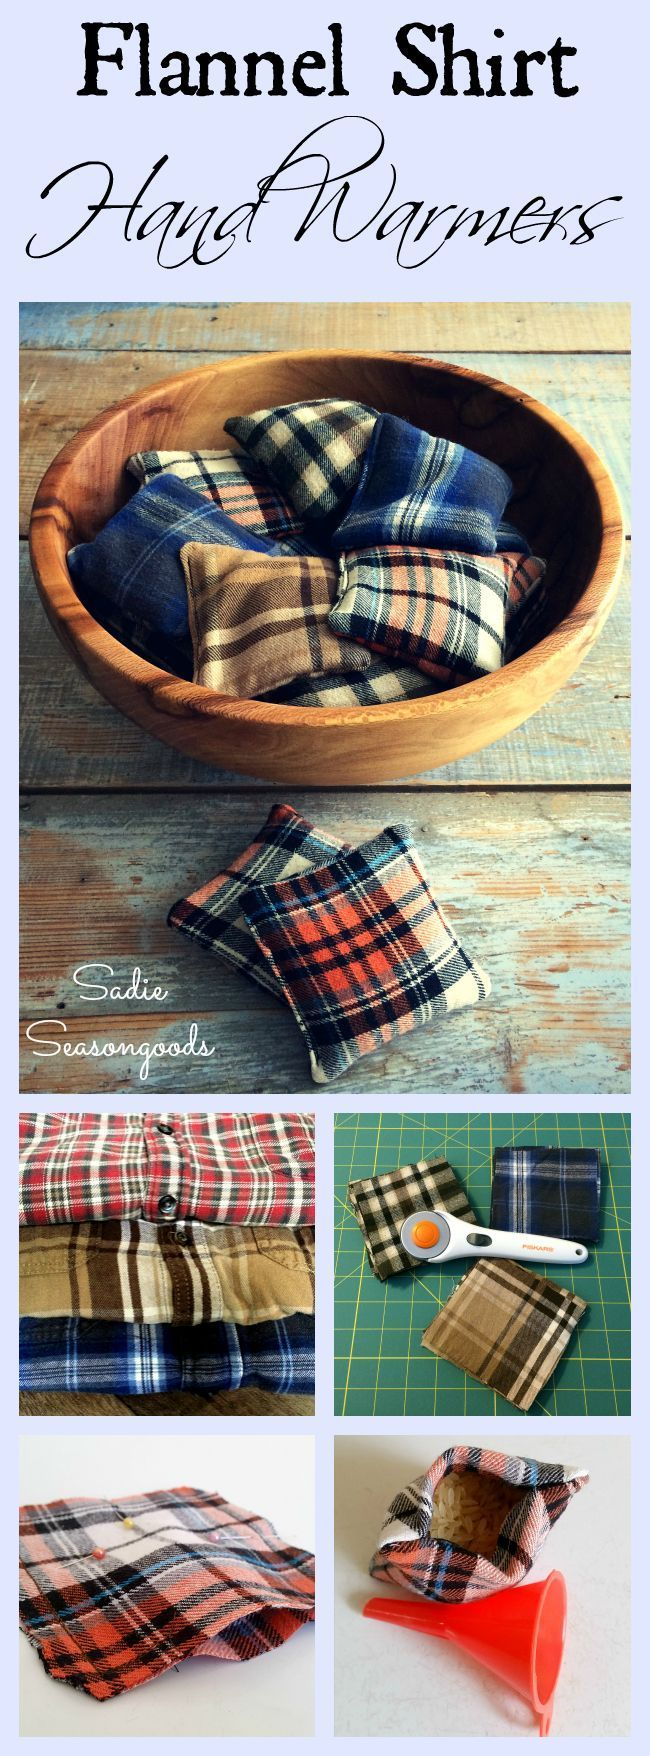 Just in time for autumn bonfires, chilly football games, and walking in a winter wonderland- DIY flannel hand warmers using scraps that came from thrifted shirts! Such a simple, quick project- any leftover fabric scraps will do- and you fill them with rice! 25-30 seconds in the microwave and they get nice and toasty- perfect for taking the chill off of cold hands. #SadieSeasongoods